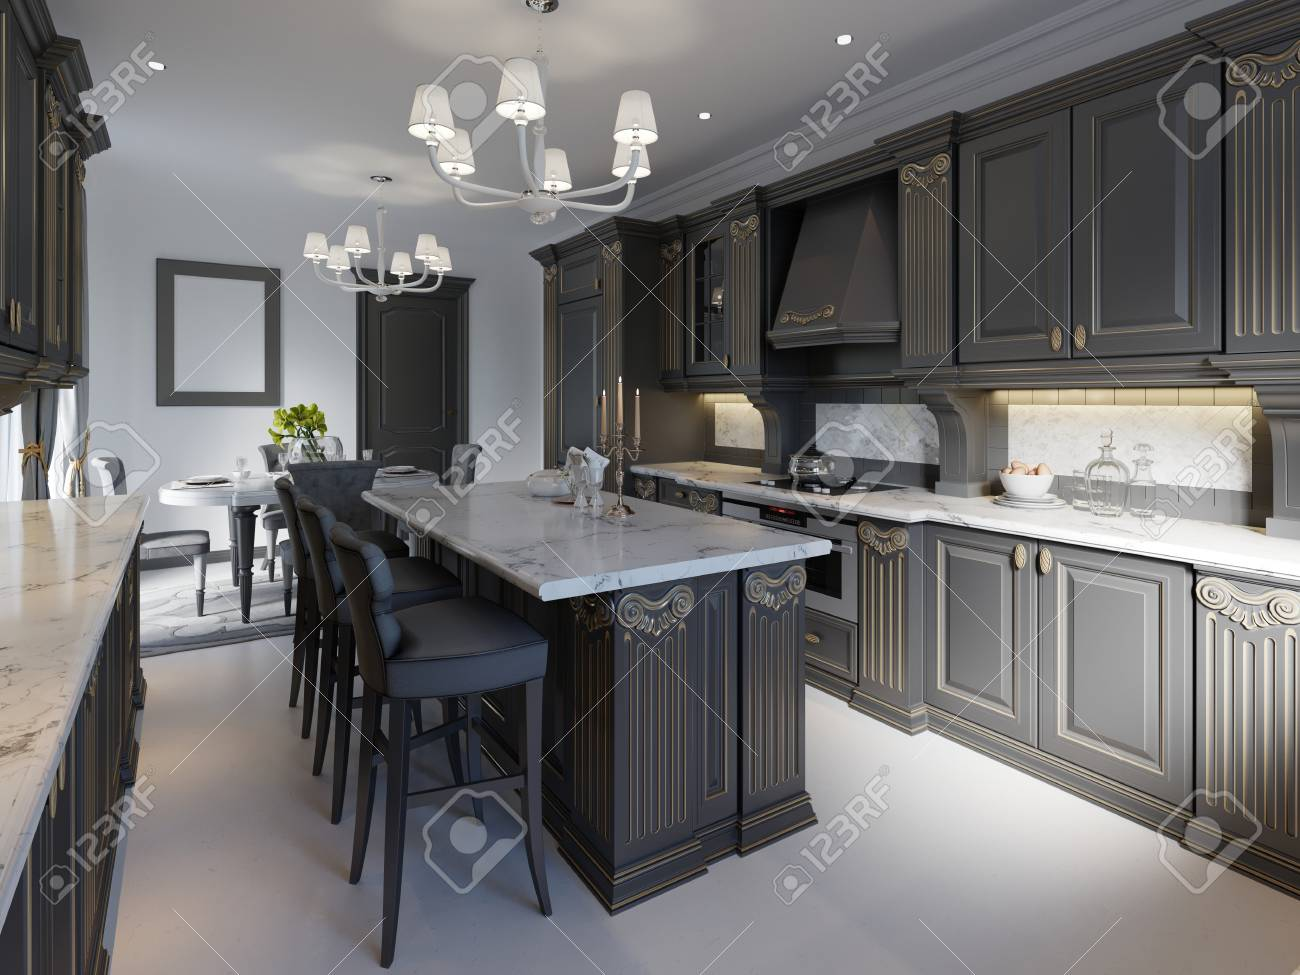 Modern classic kitchen design with black cabinets and white marble..